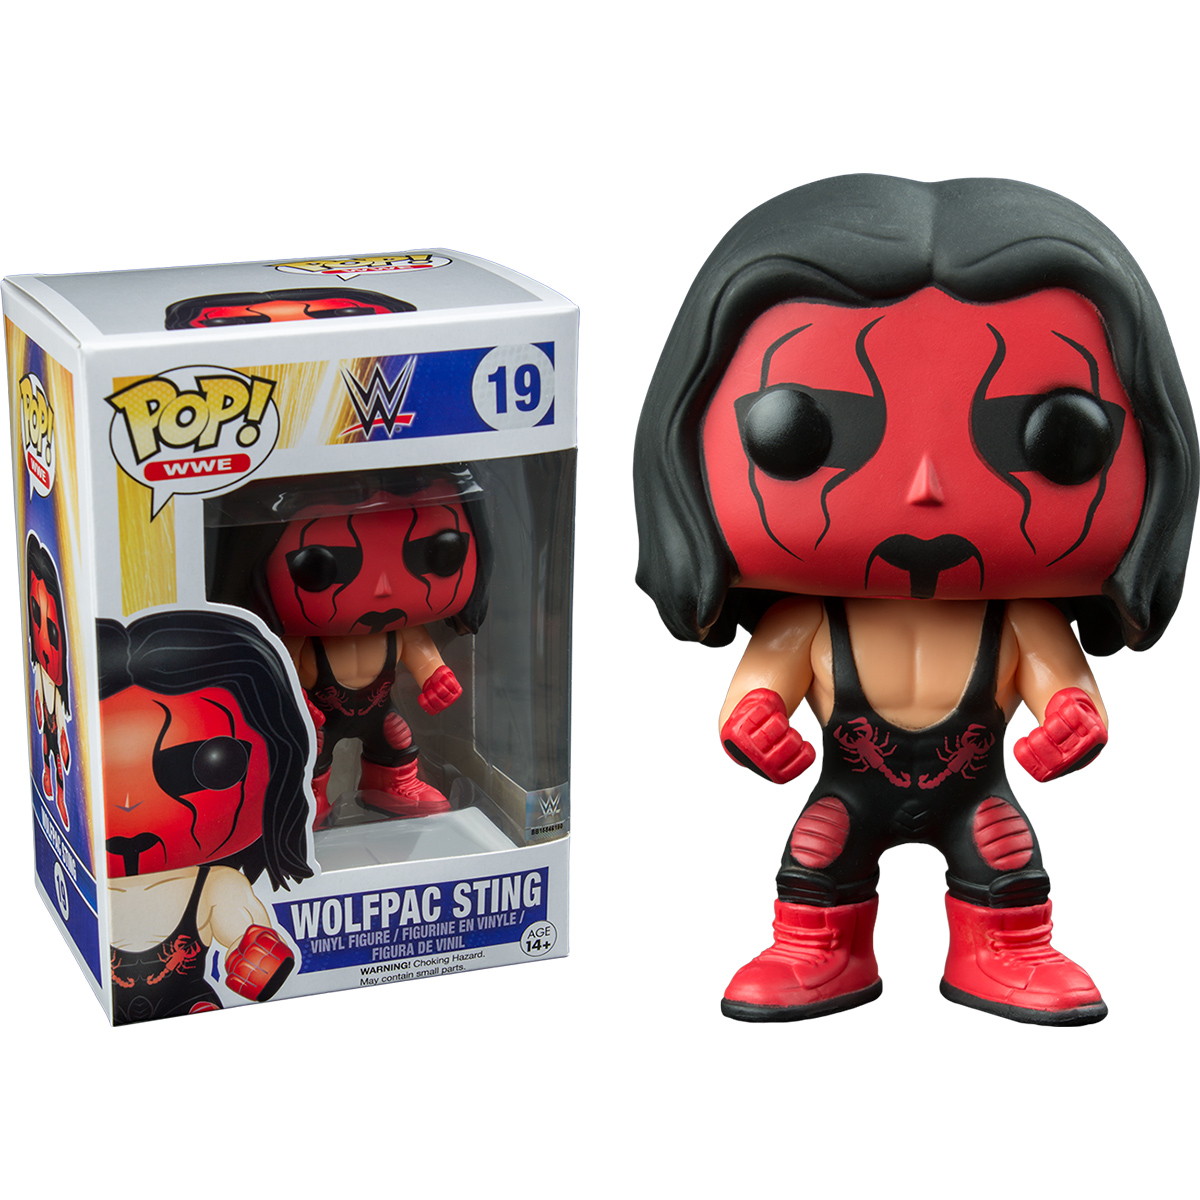 Funko Wwe Wolfpac Sting Pop Vinyl Figure At Hobby Warehouse